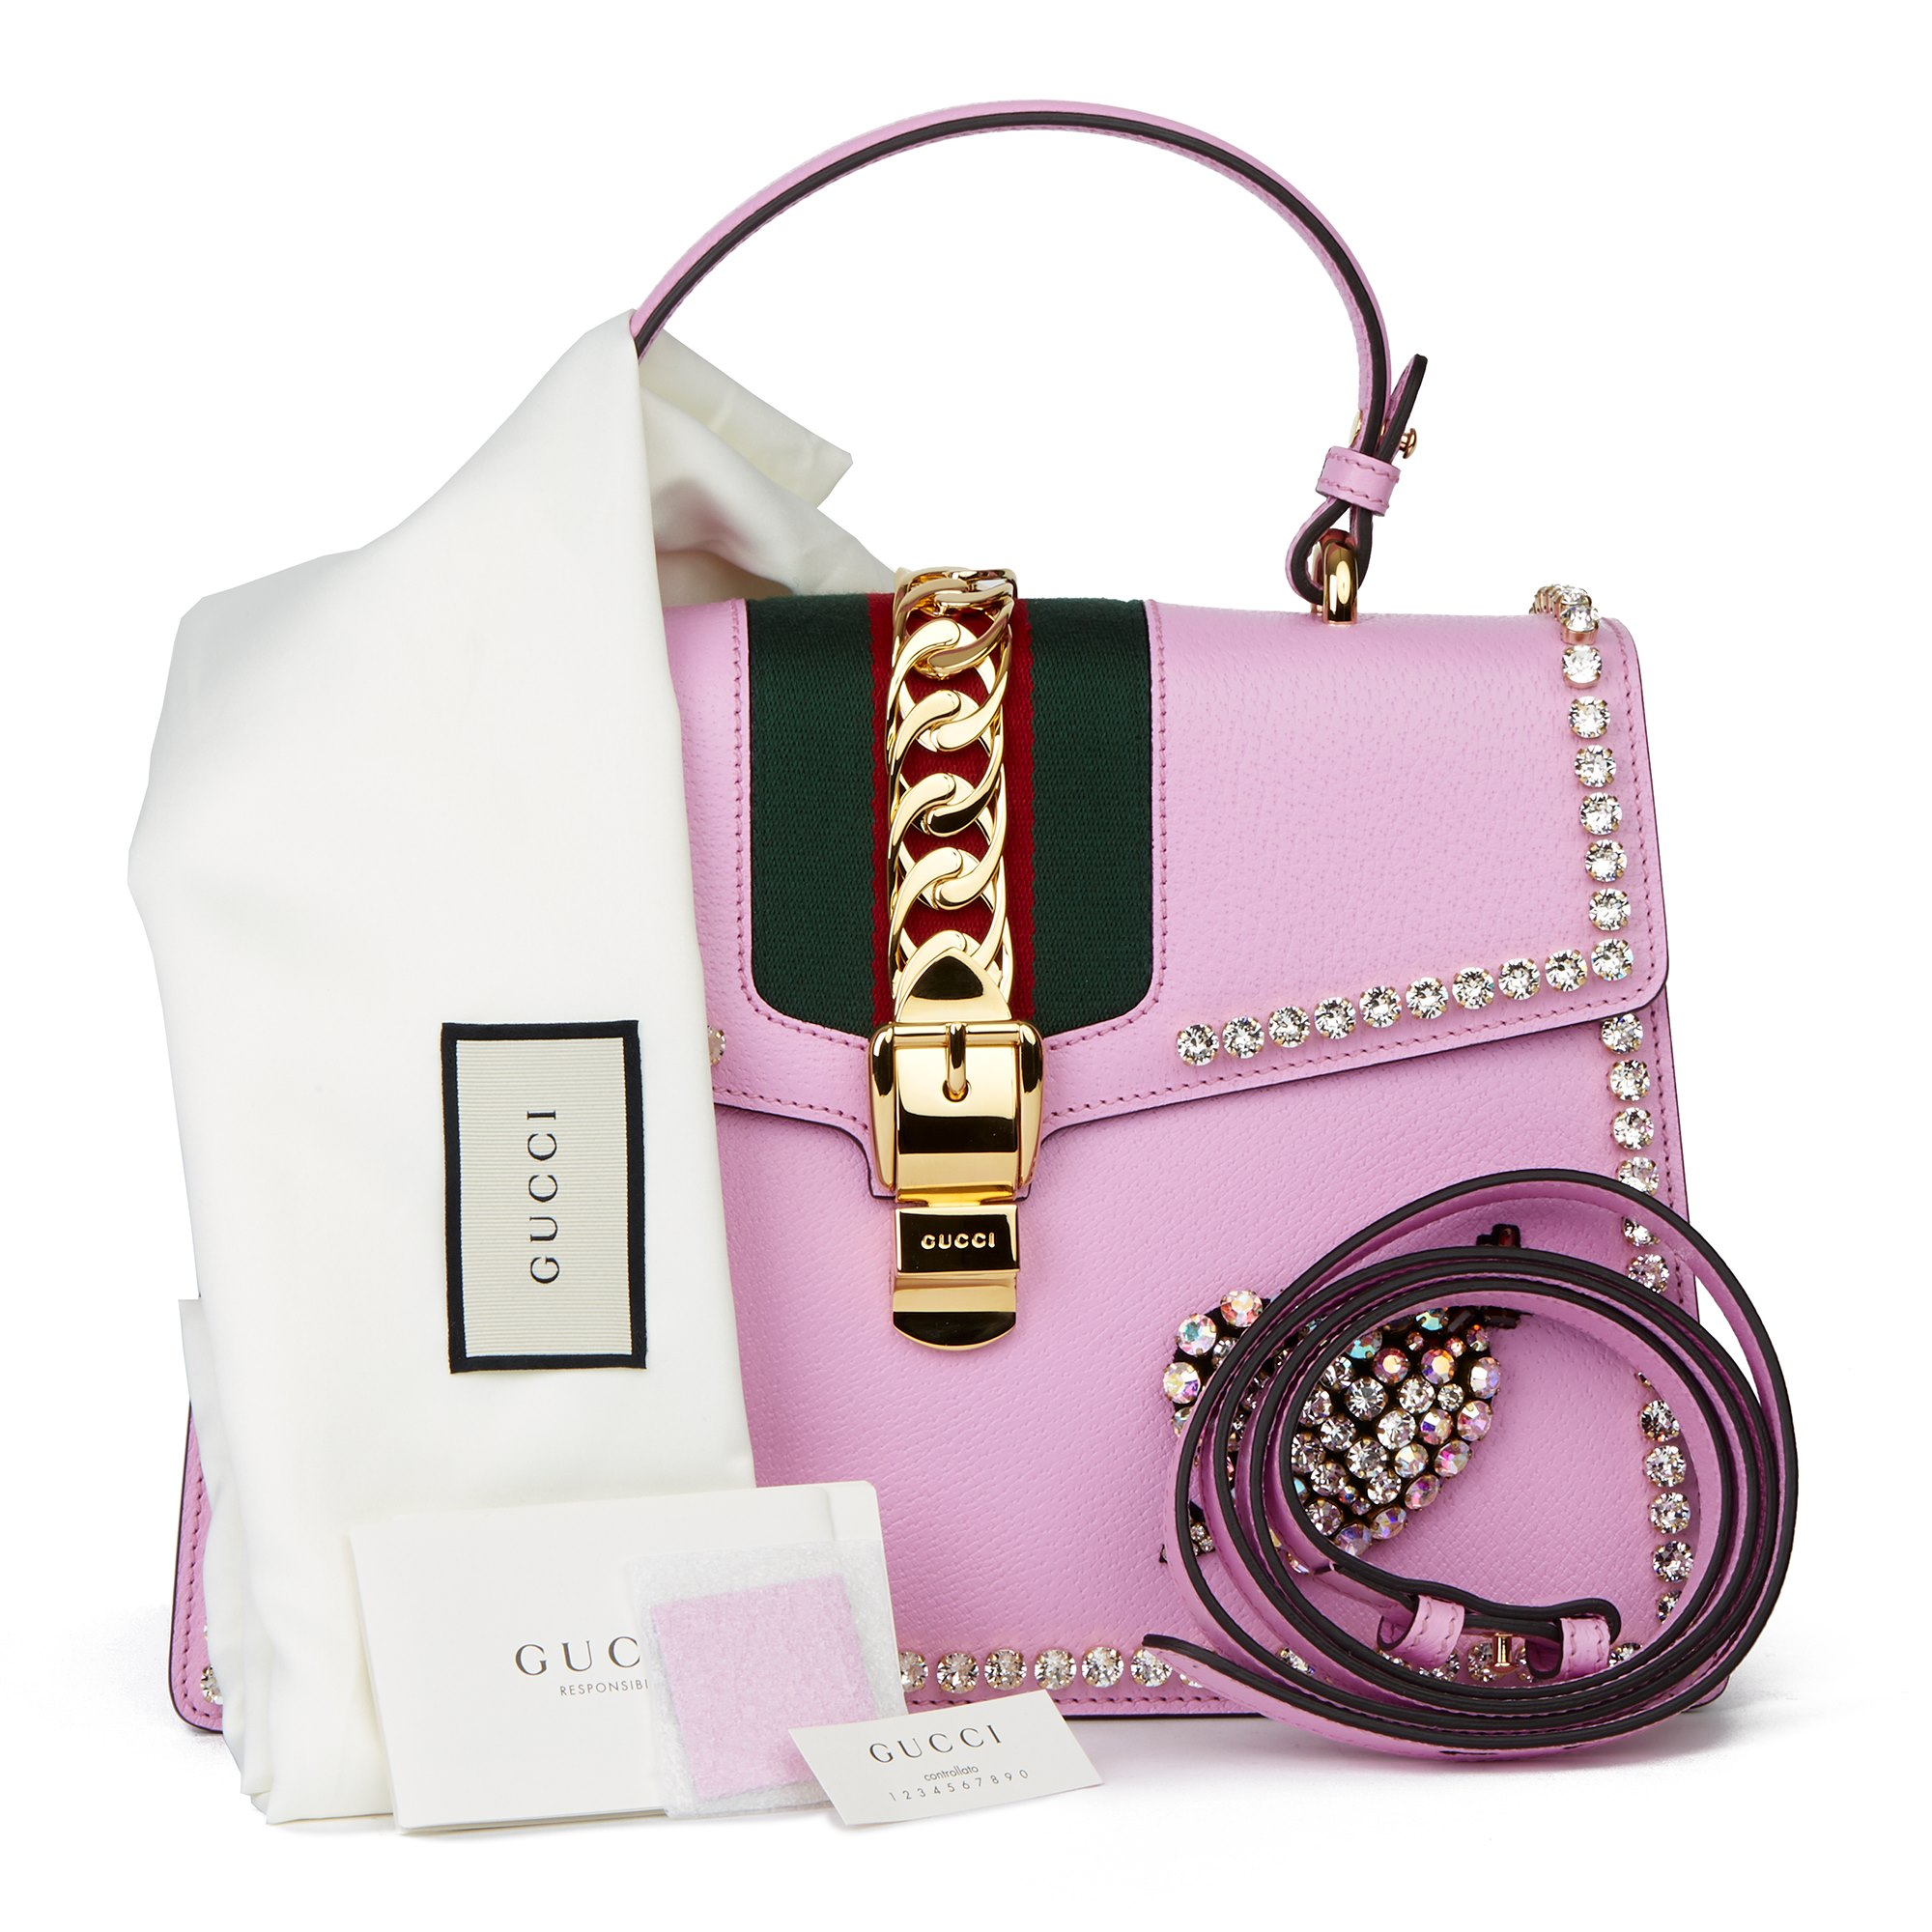 Gucci Pink Pigskin Leather Crystallised Medium Sylvie Top Handle